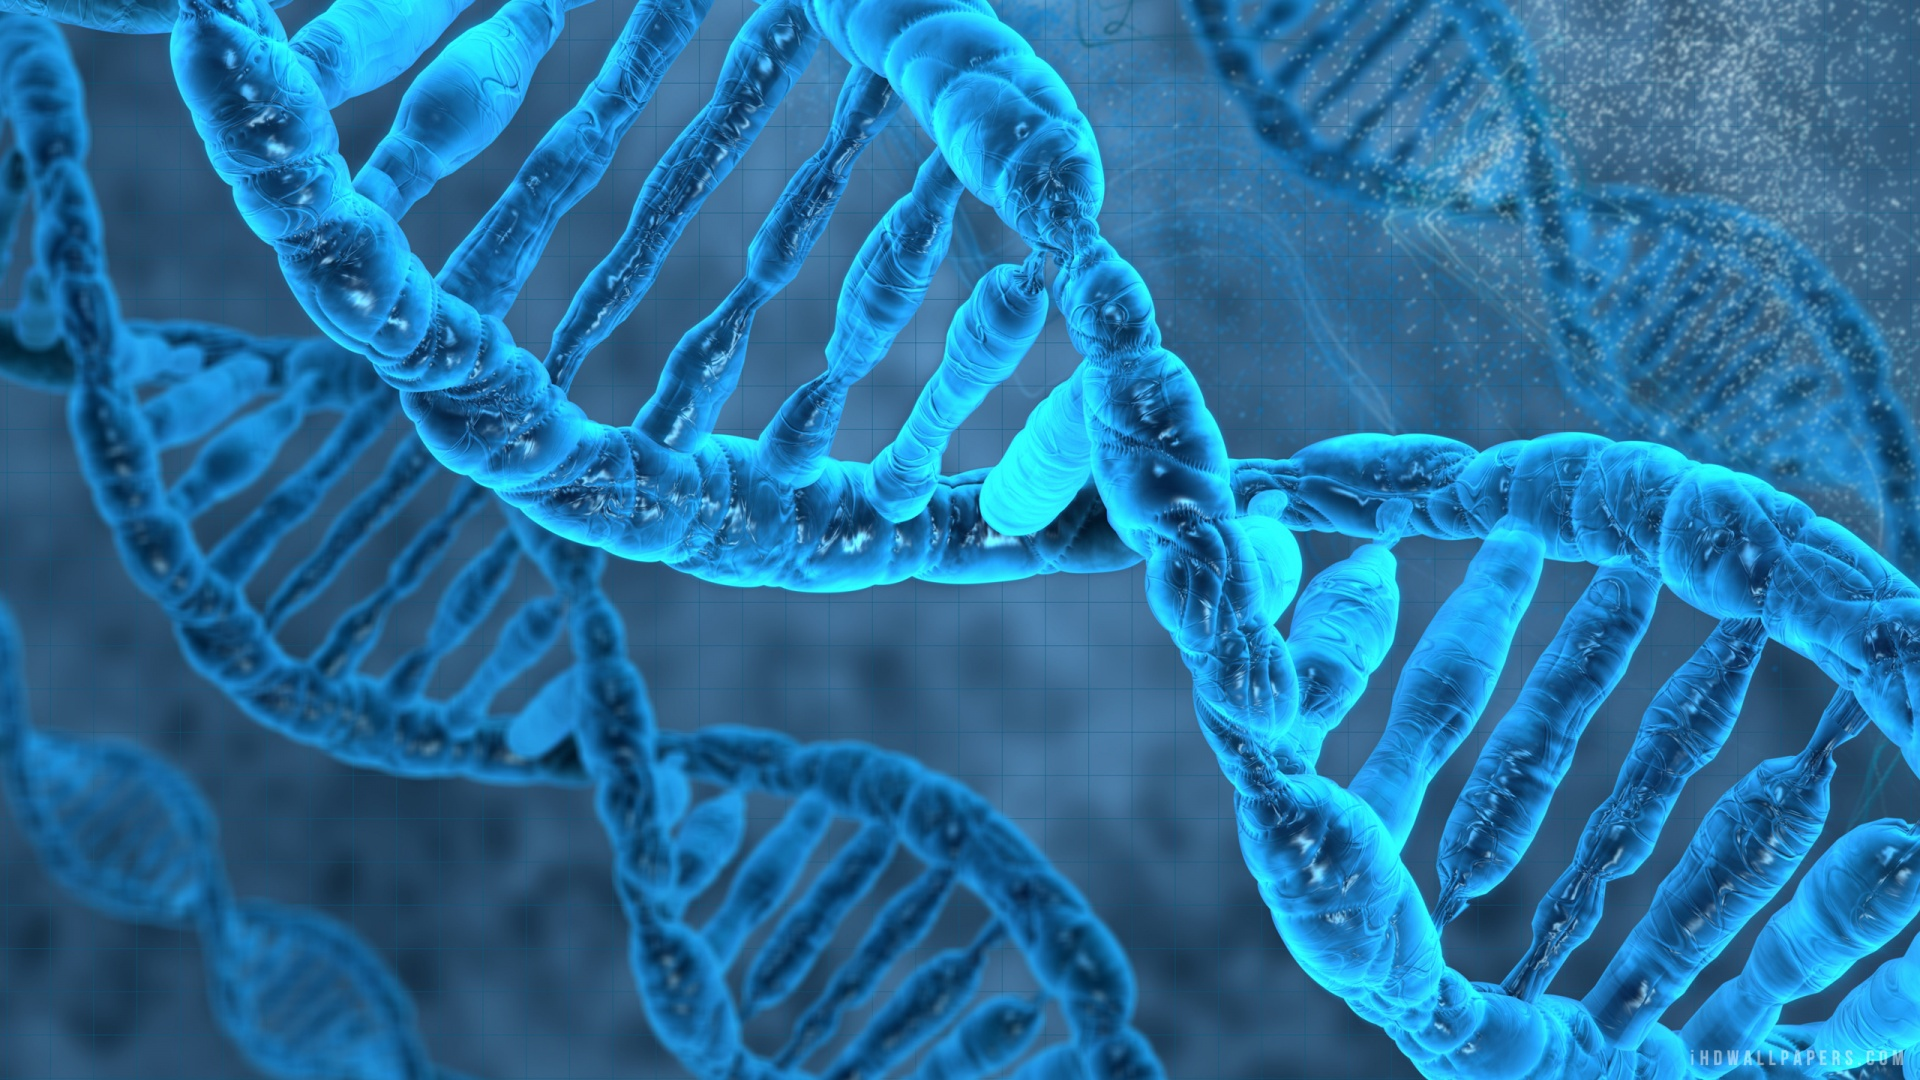 DNA Molecule HD Wallpaper   iHD Wallpapers 1920x1080